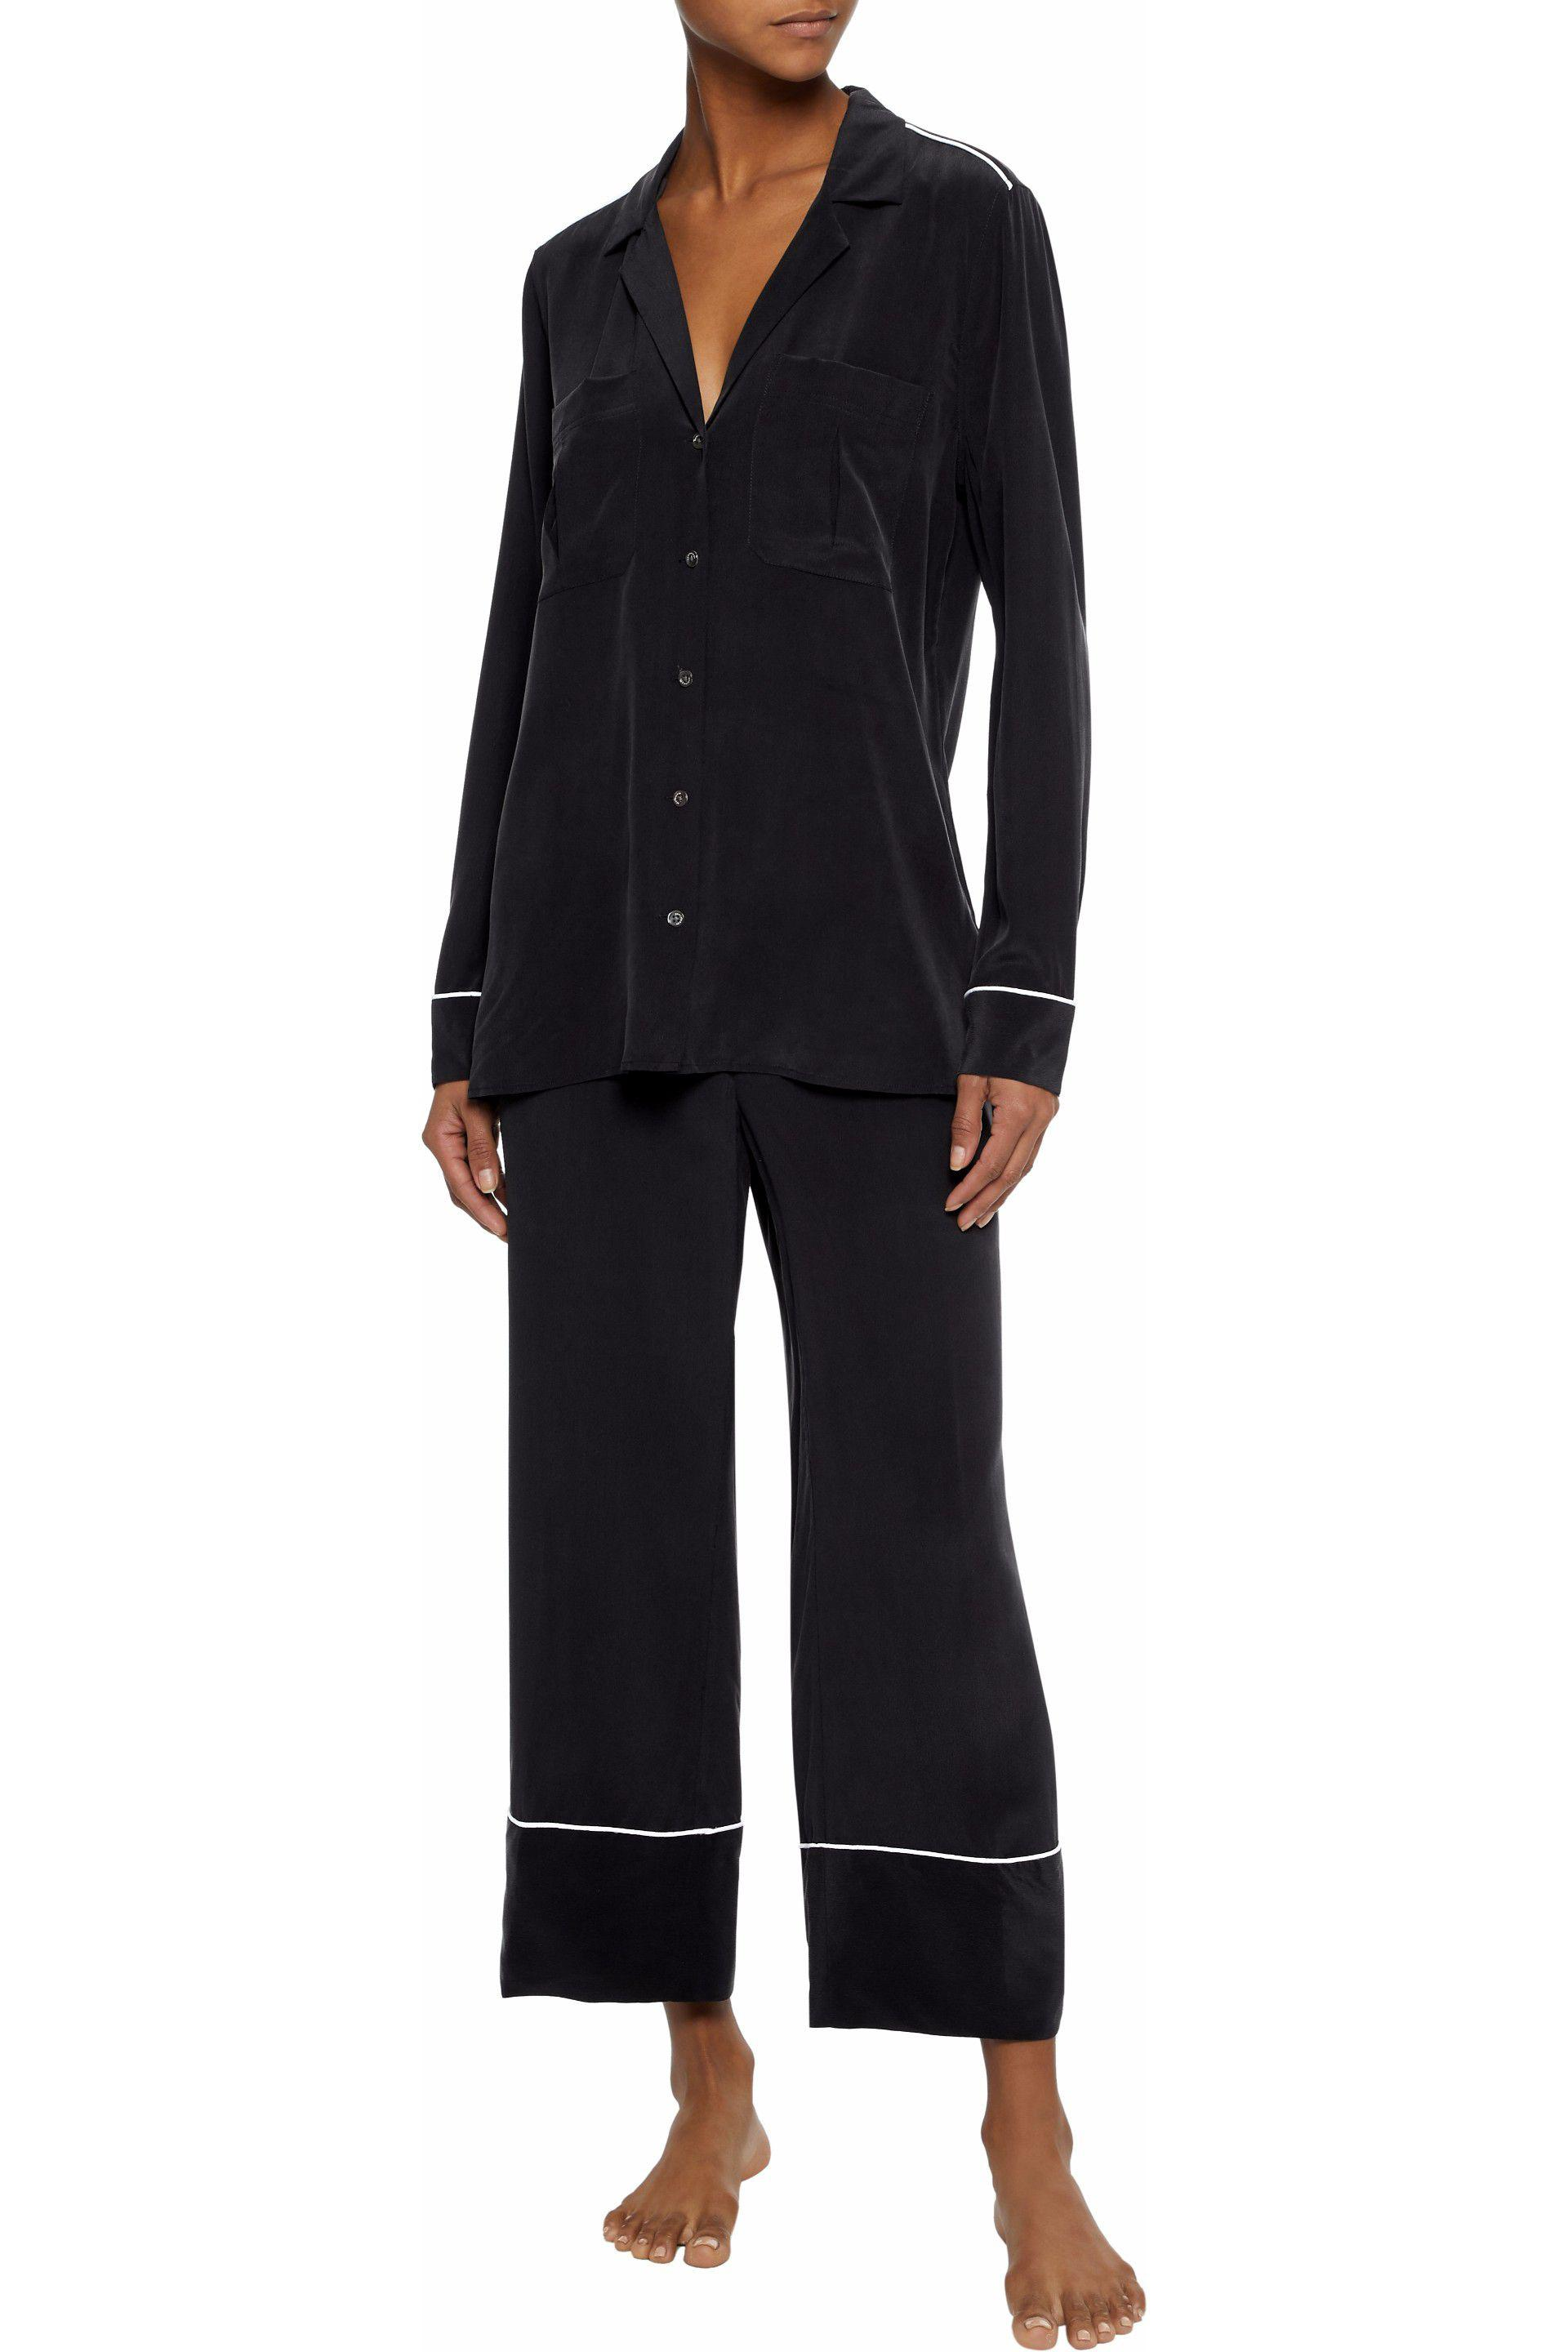 Lyst - Equipment Sonny Washed-silk Pajama Set in Black f81d28a8d